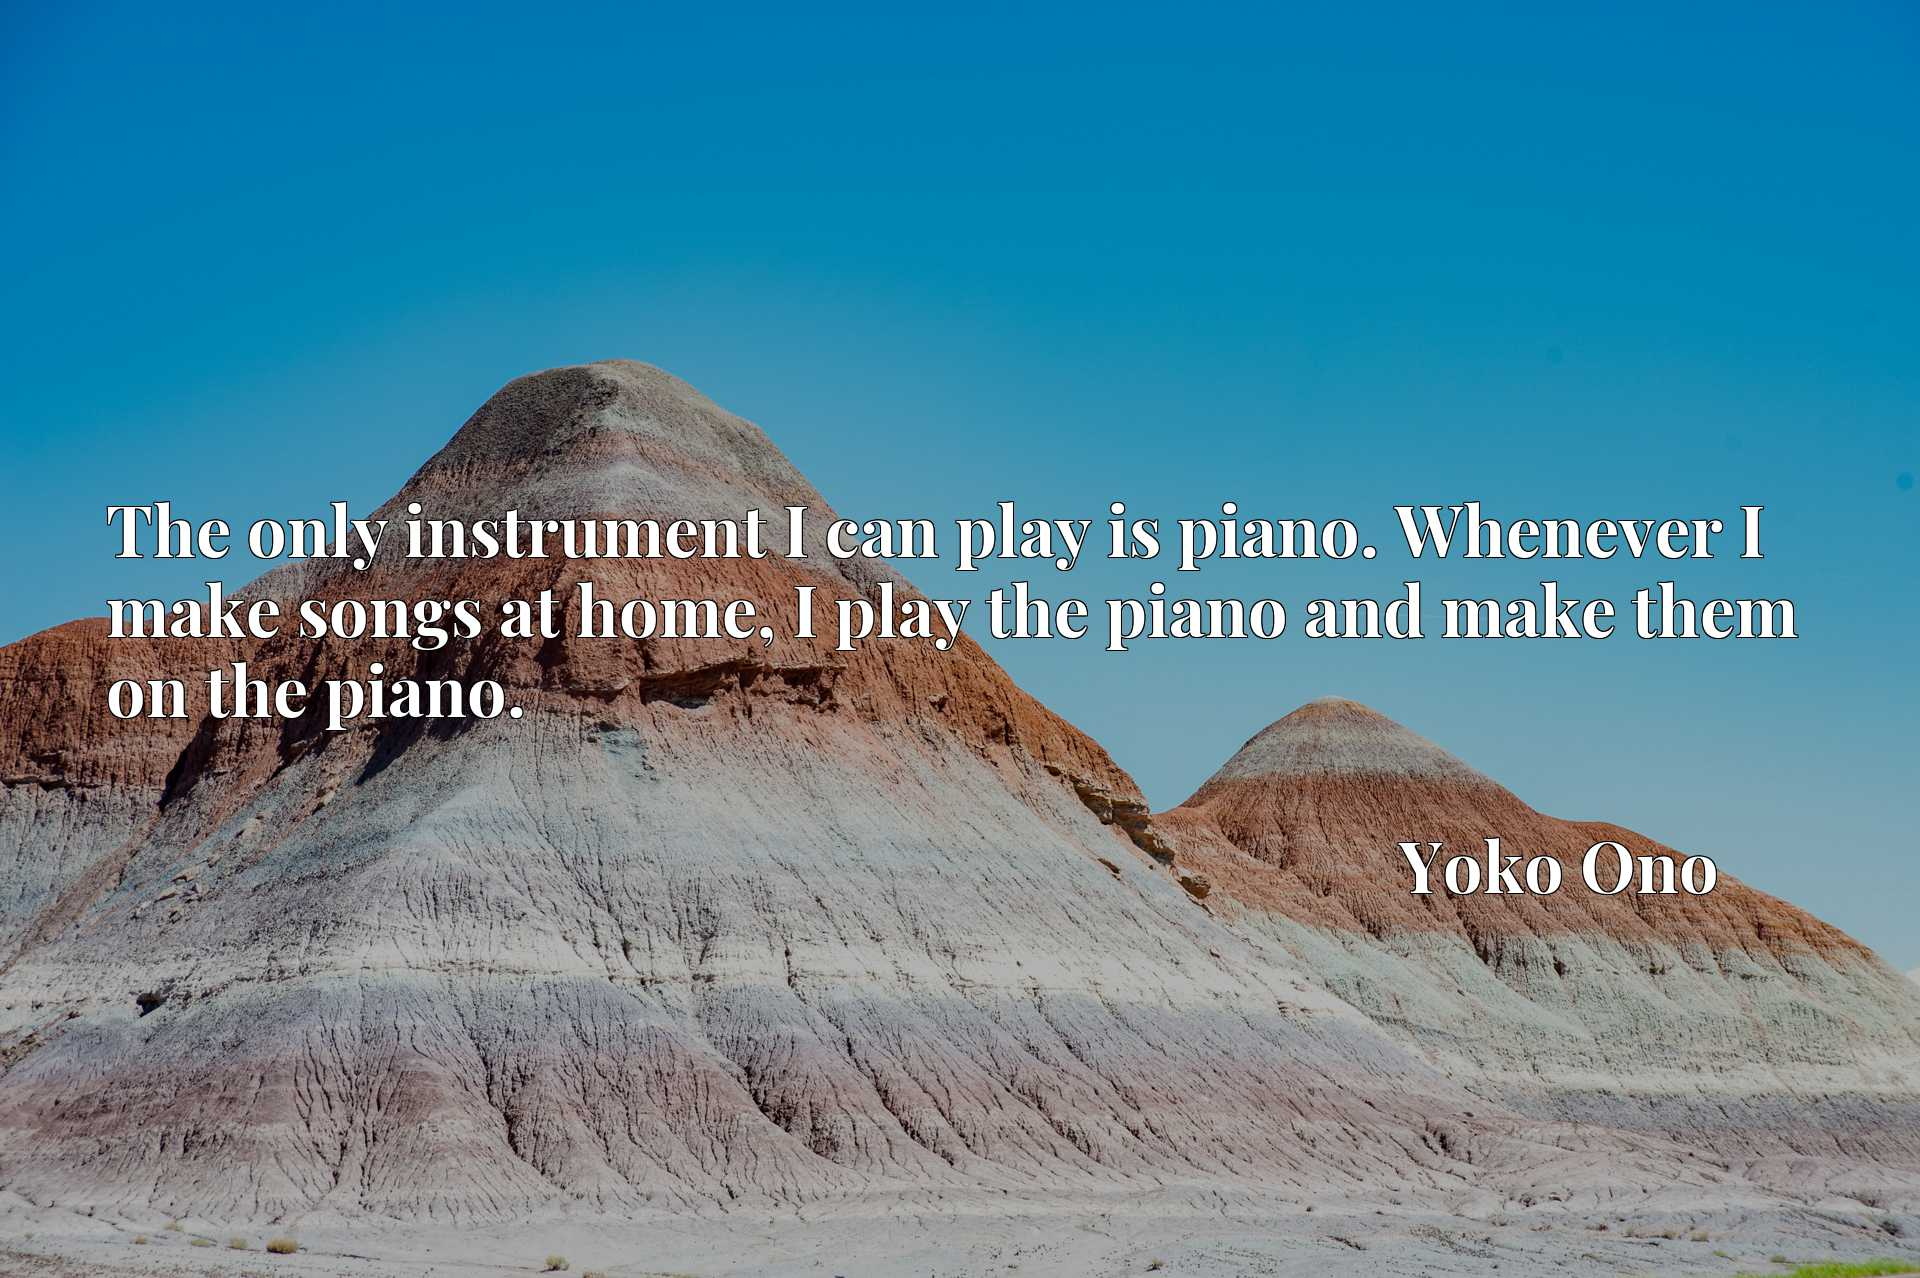 The only instrument I can play is piano. Whenever I make songs at home, I play the piano and make them on the piano.